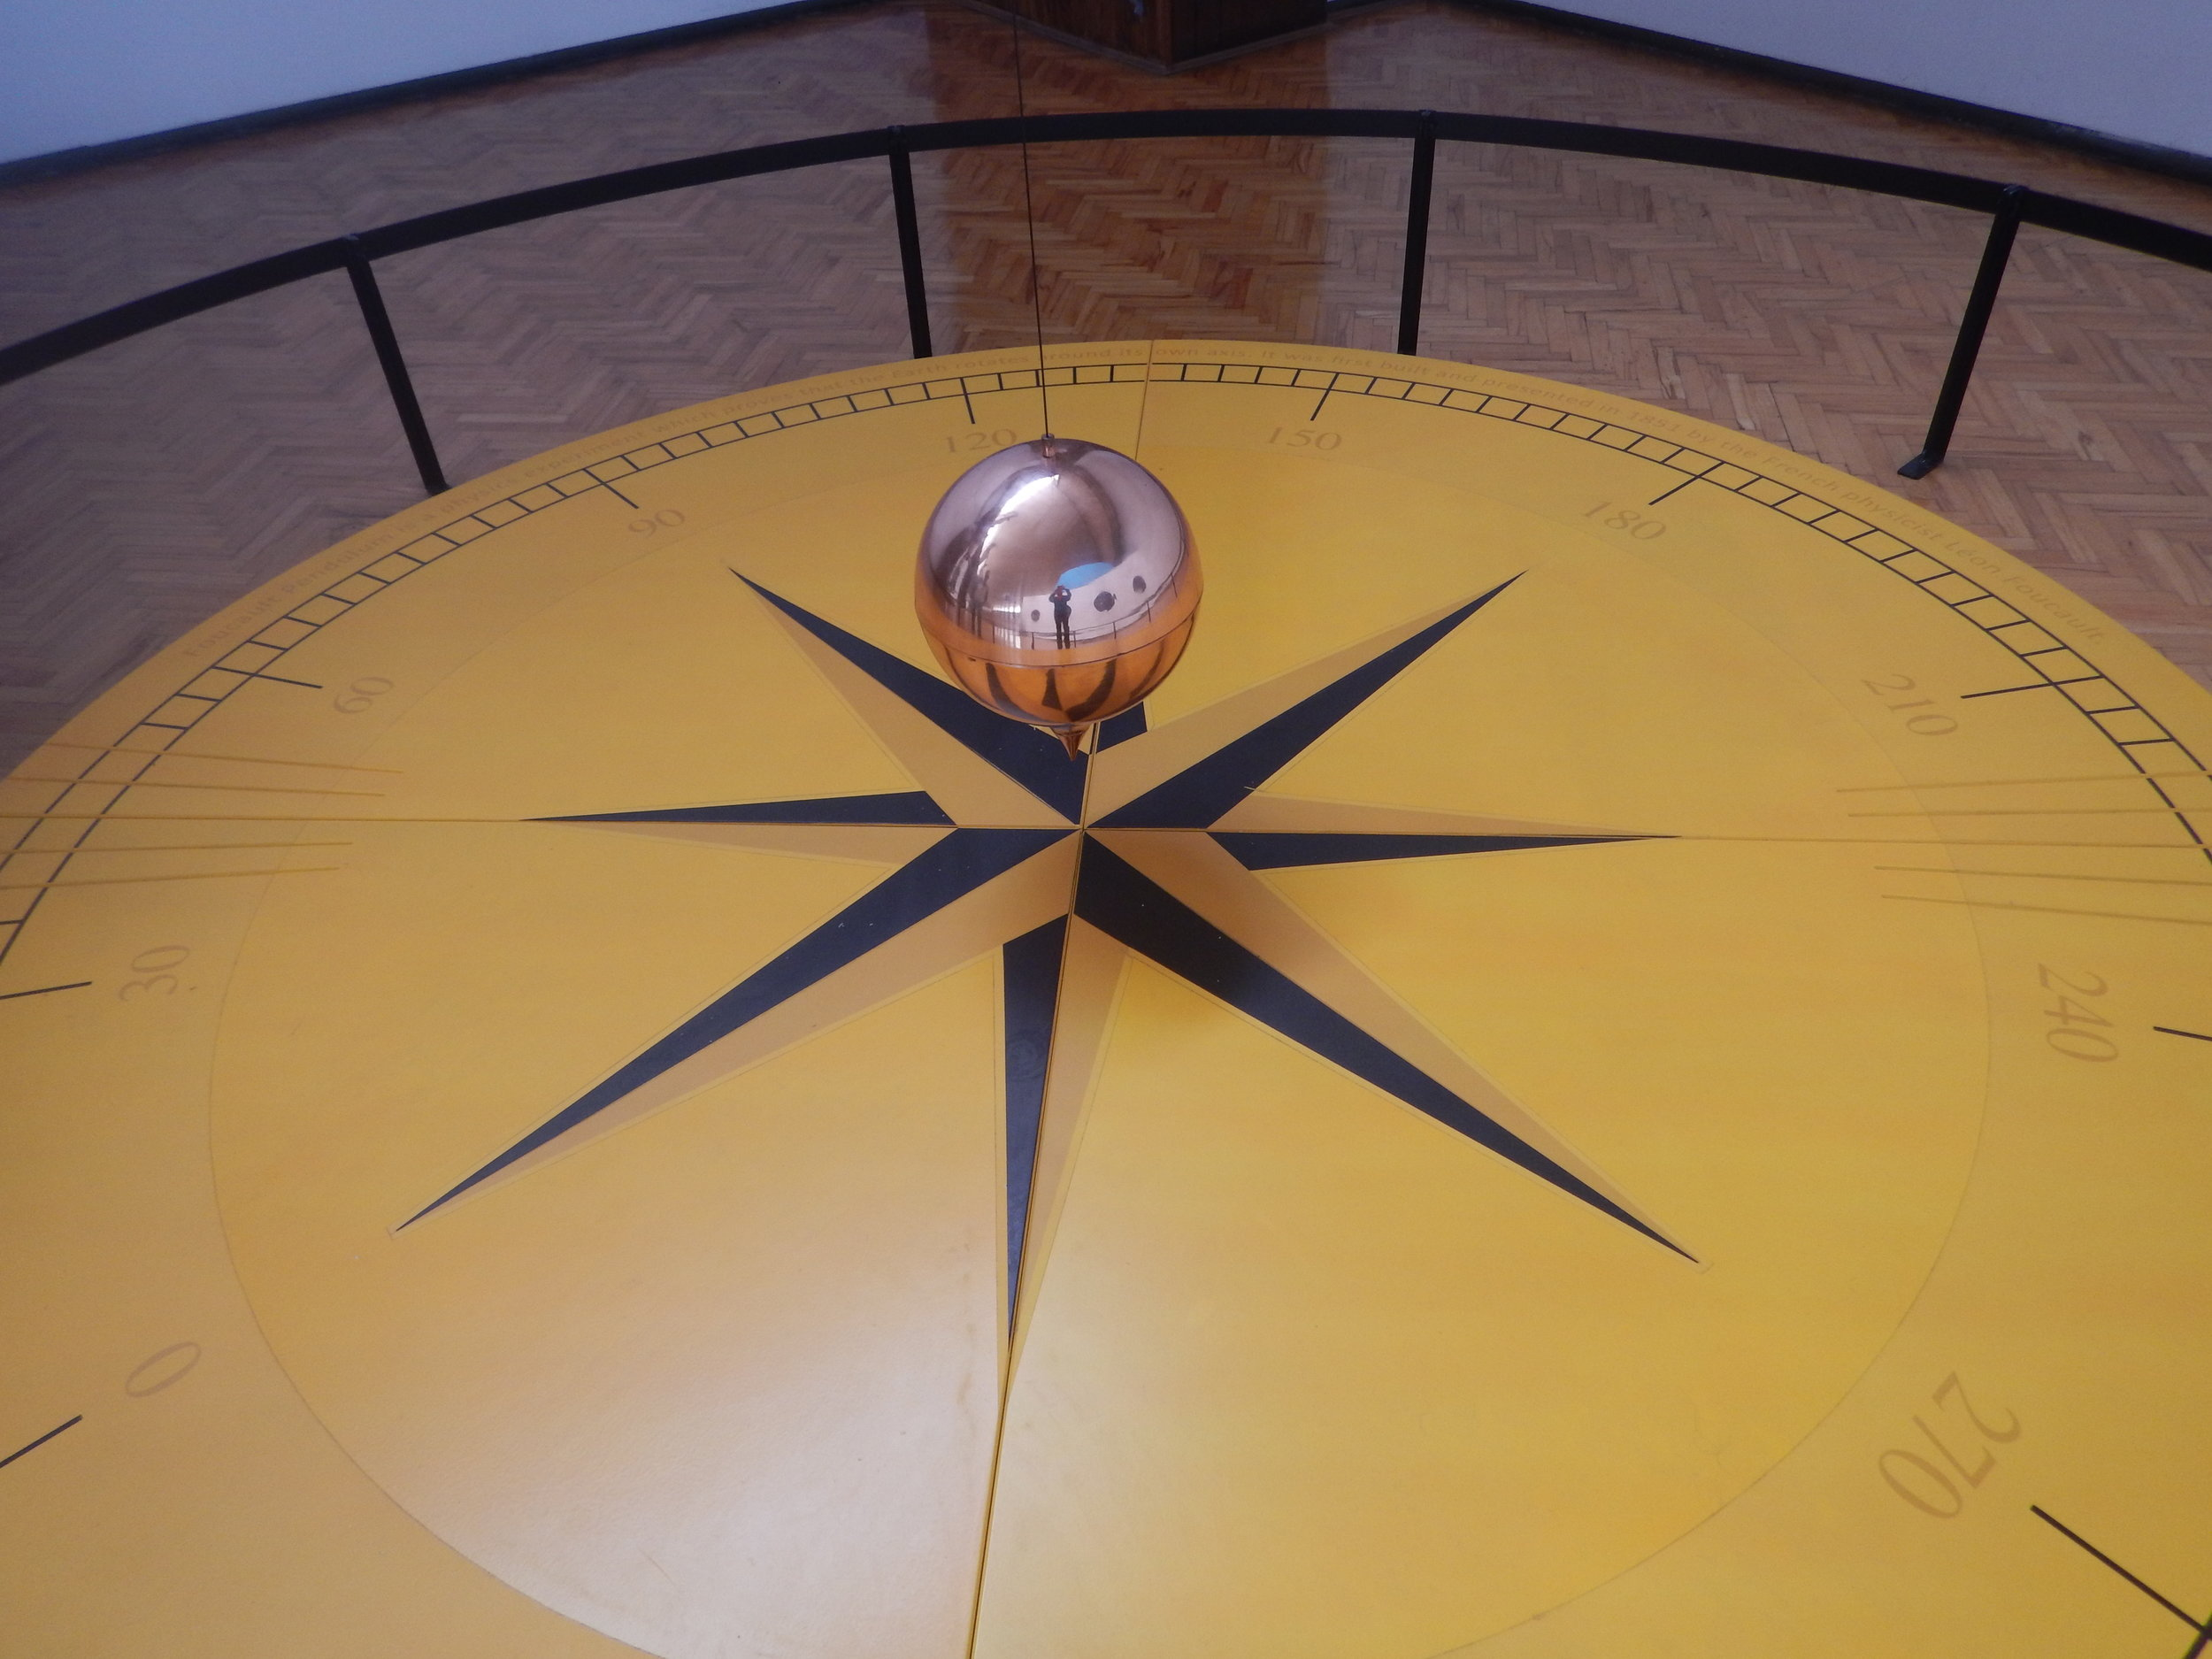 Now this is really interesting. Foucaults Pendulum.